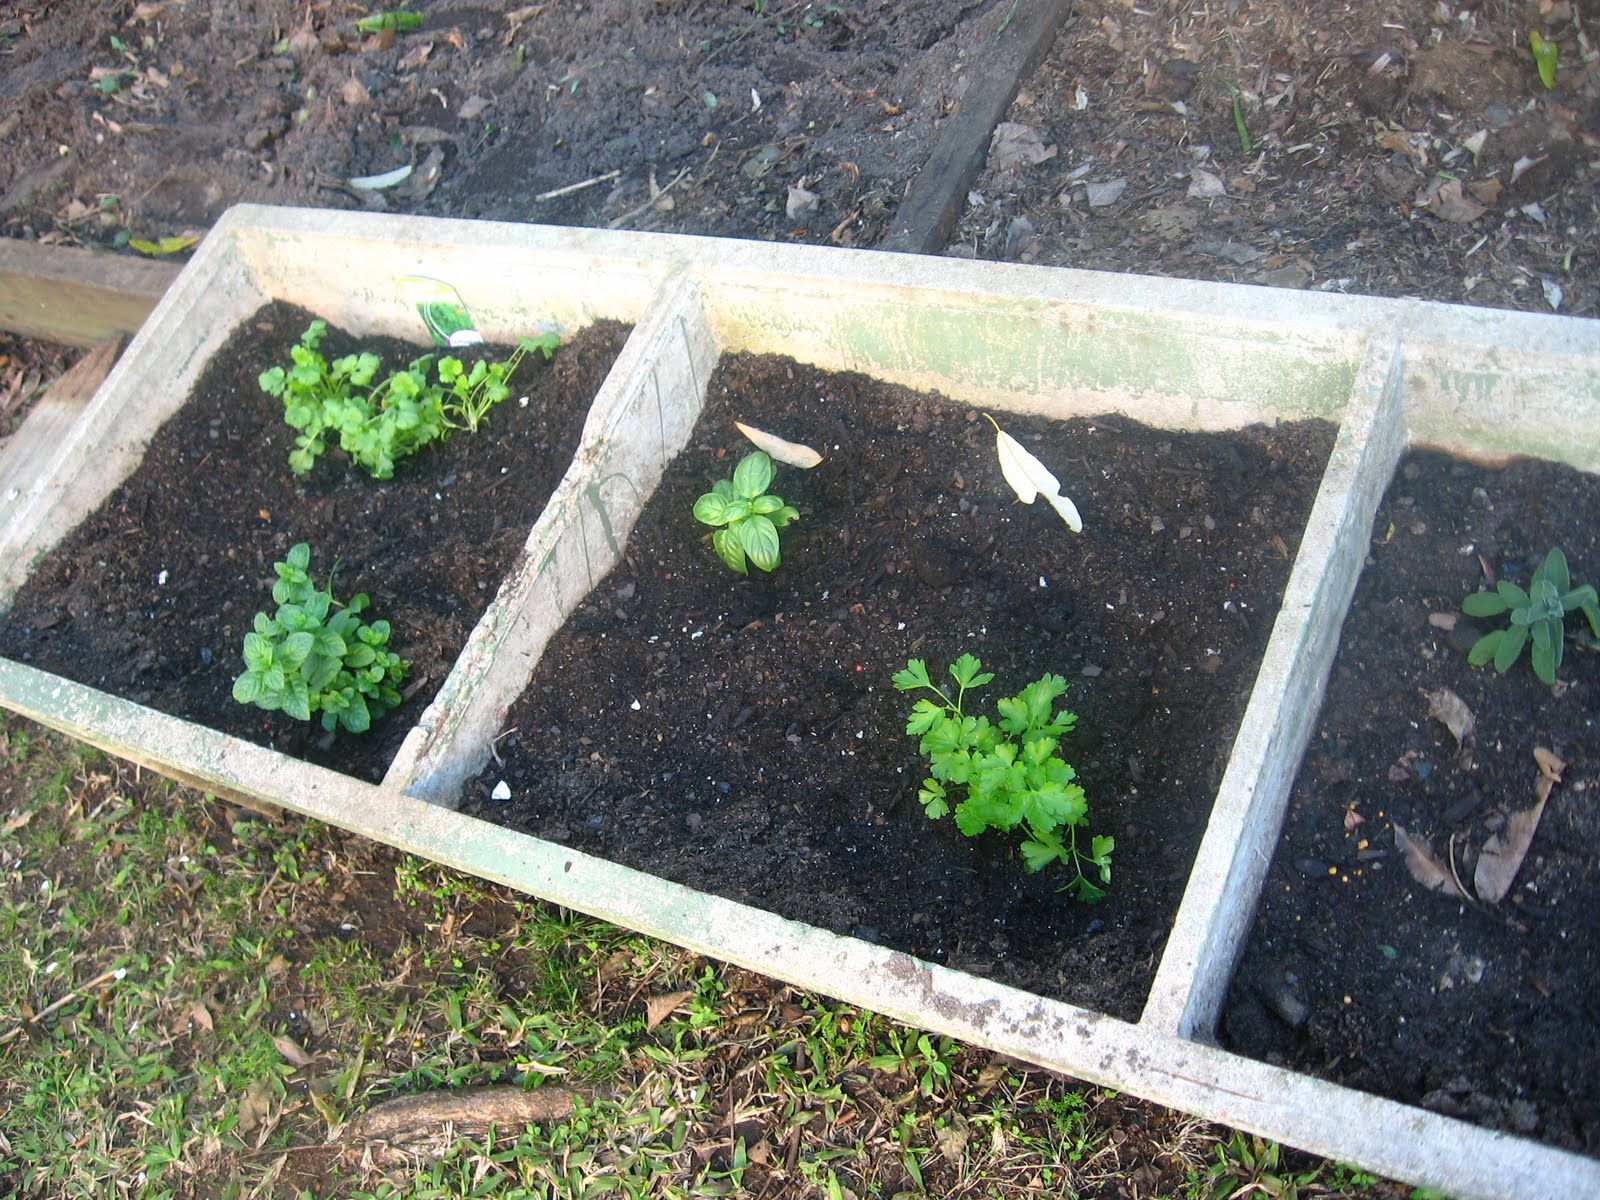 Fun and VJs: Herbs in a concrete laundry tub